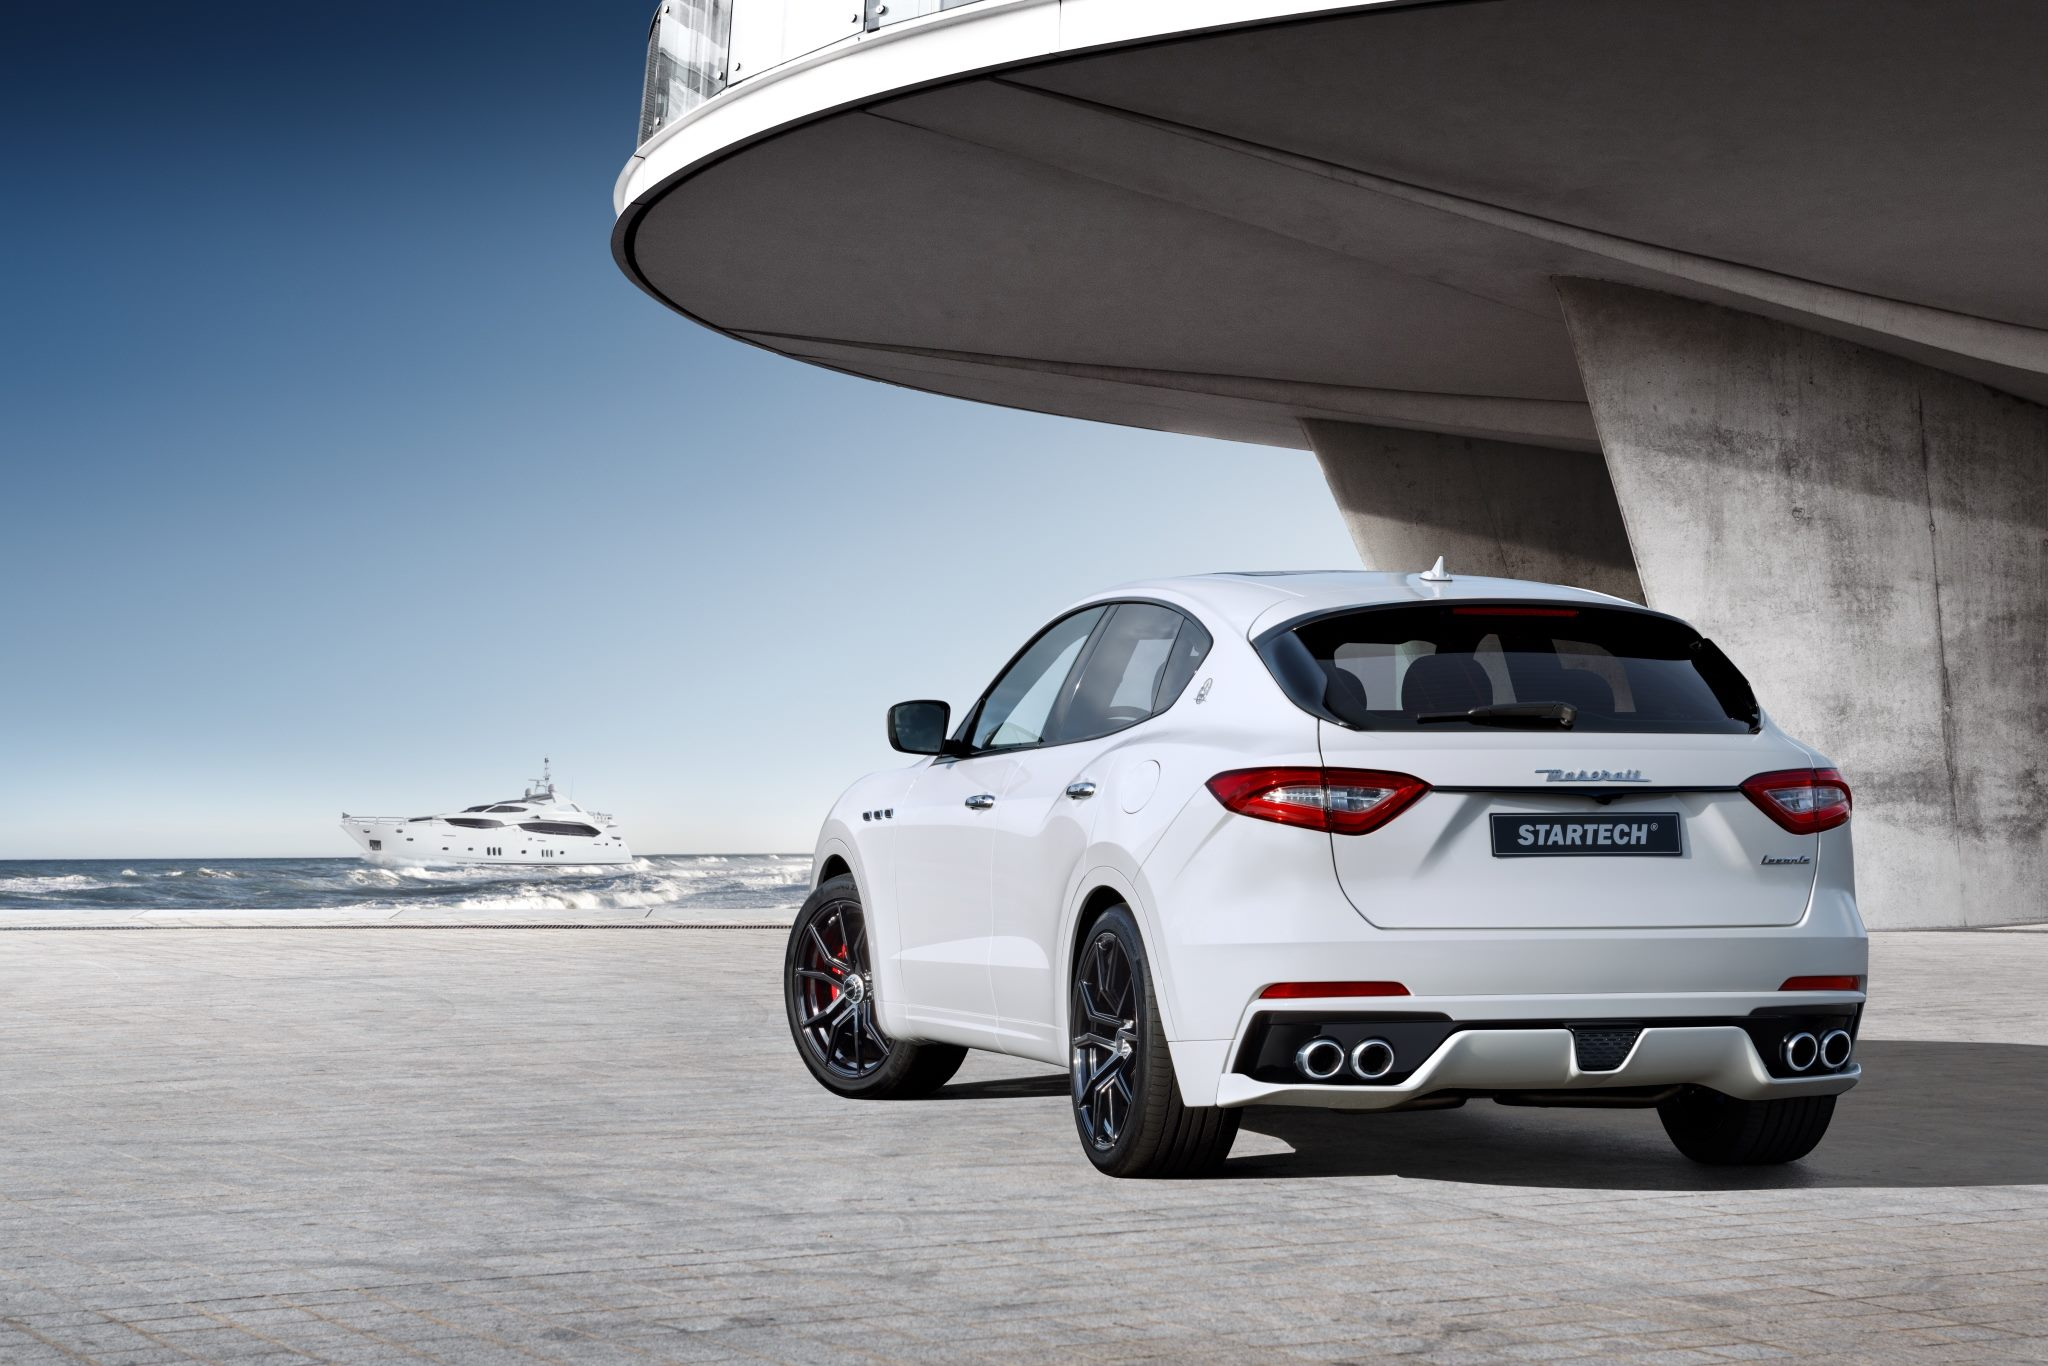 Maserati Levante Gets a Tuning Kit From Startech, It Looks ...